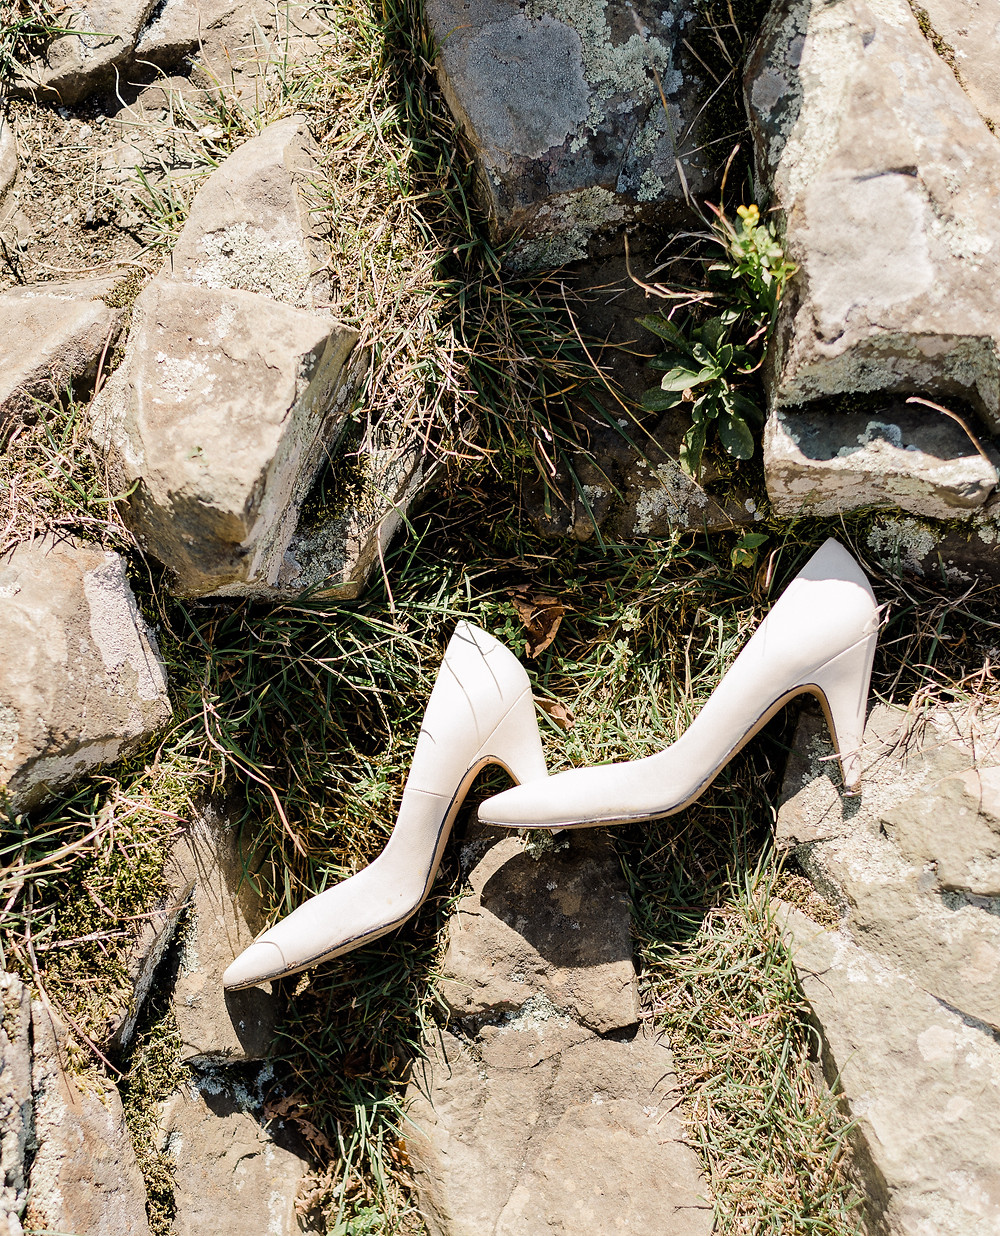 The bride's shoes- the barefoot bride.